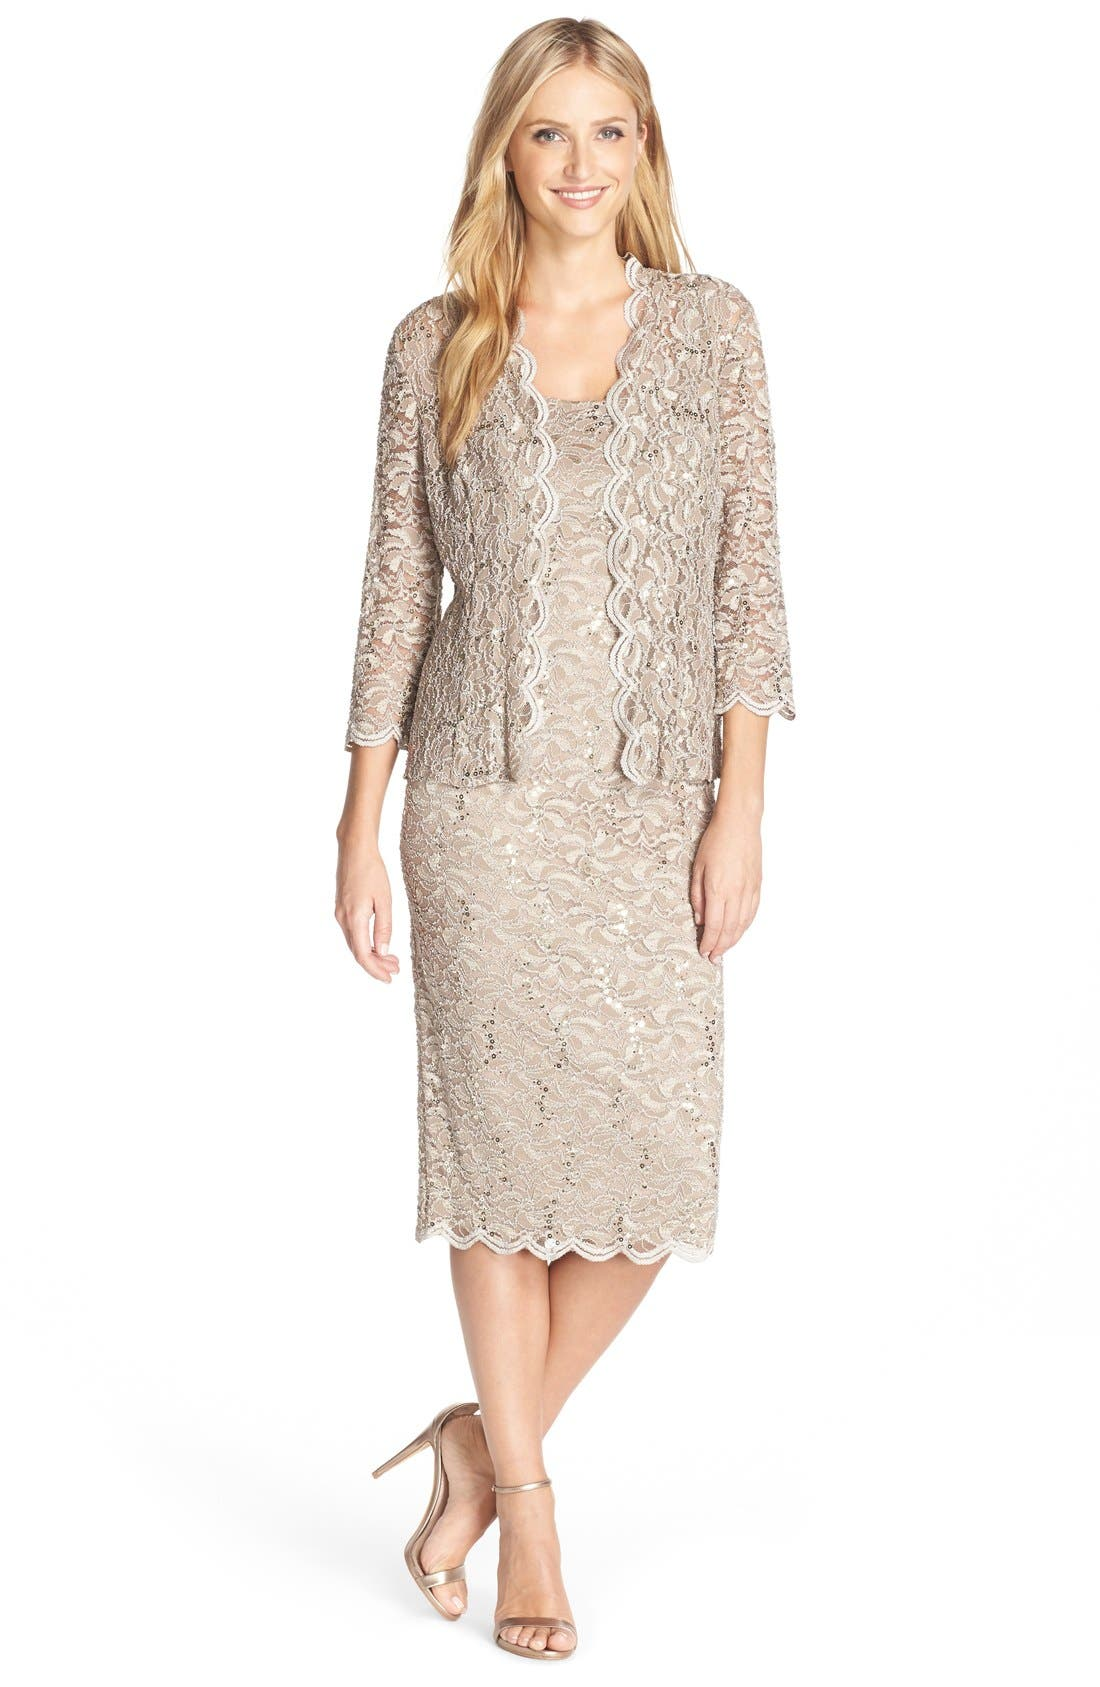 Alex Evenings Lace Dress & Jacket, Beige